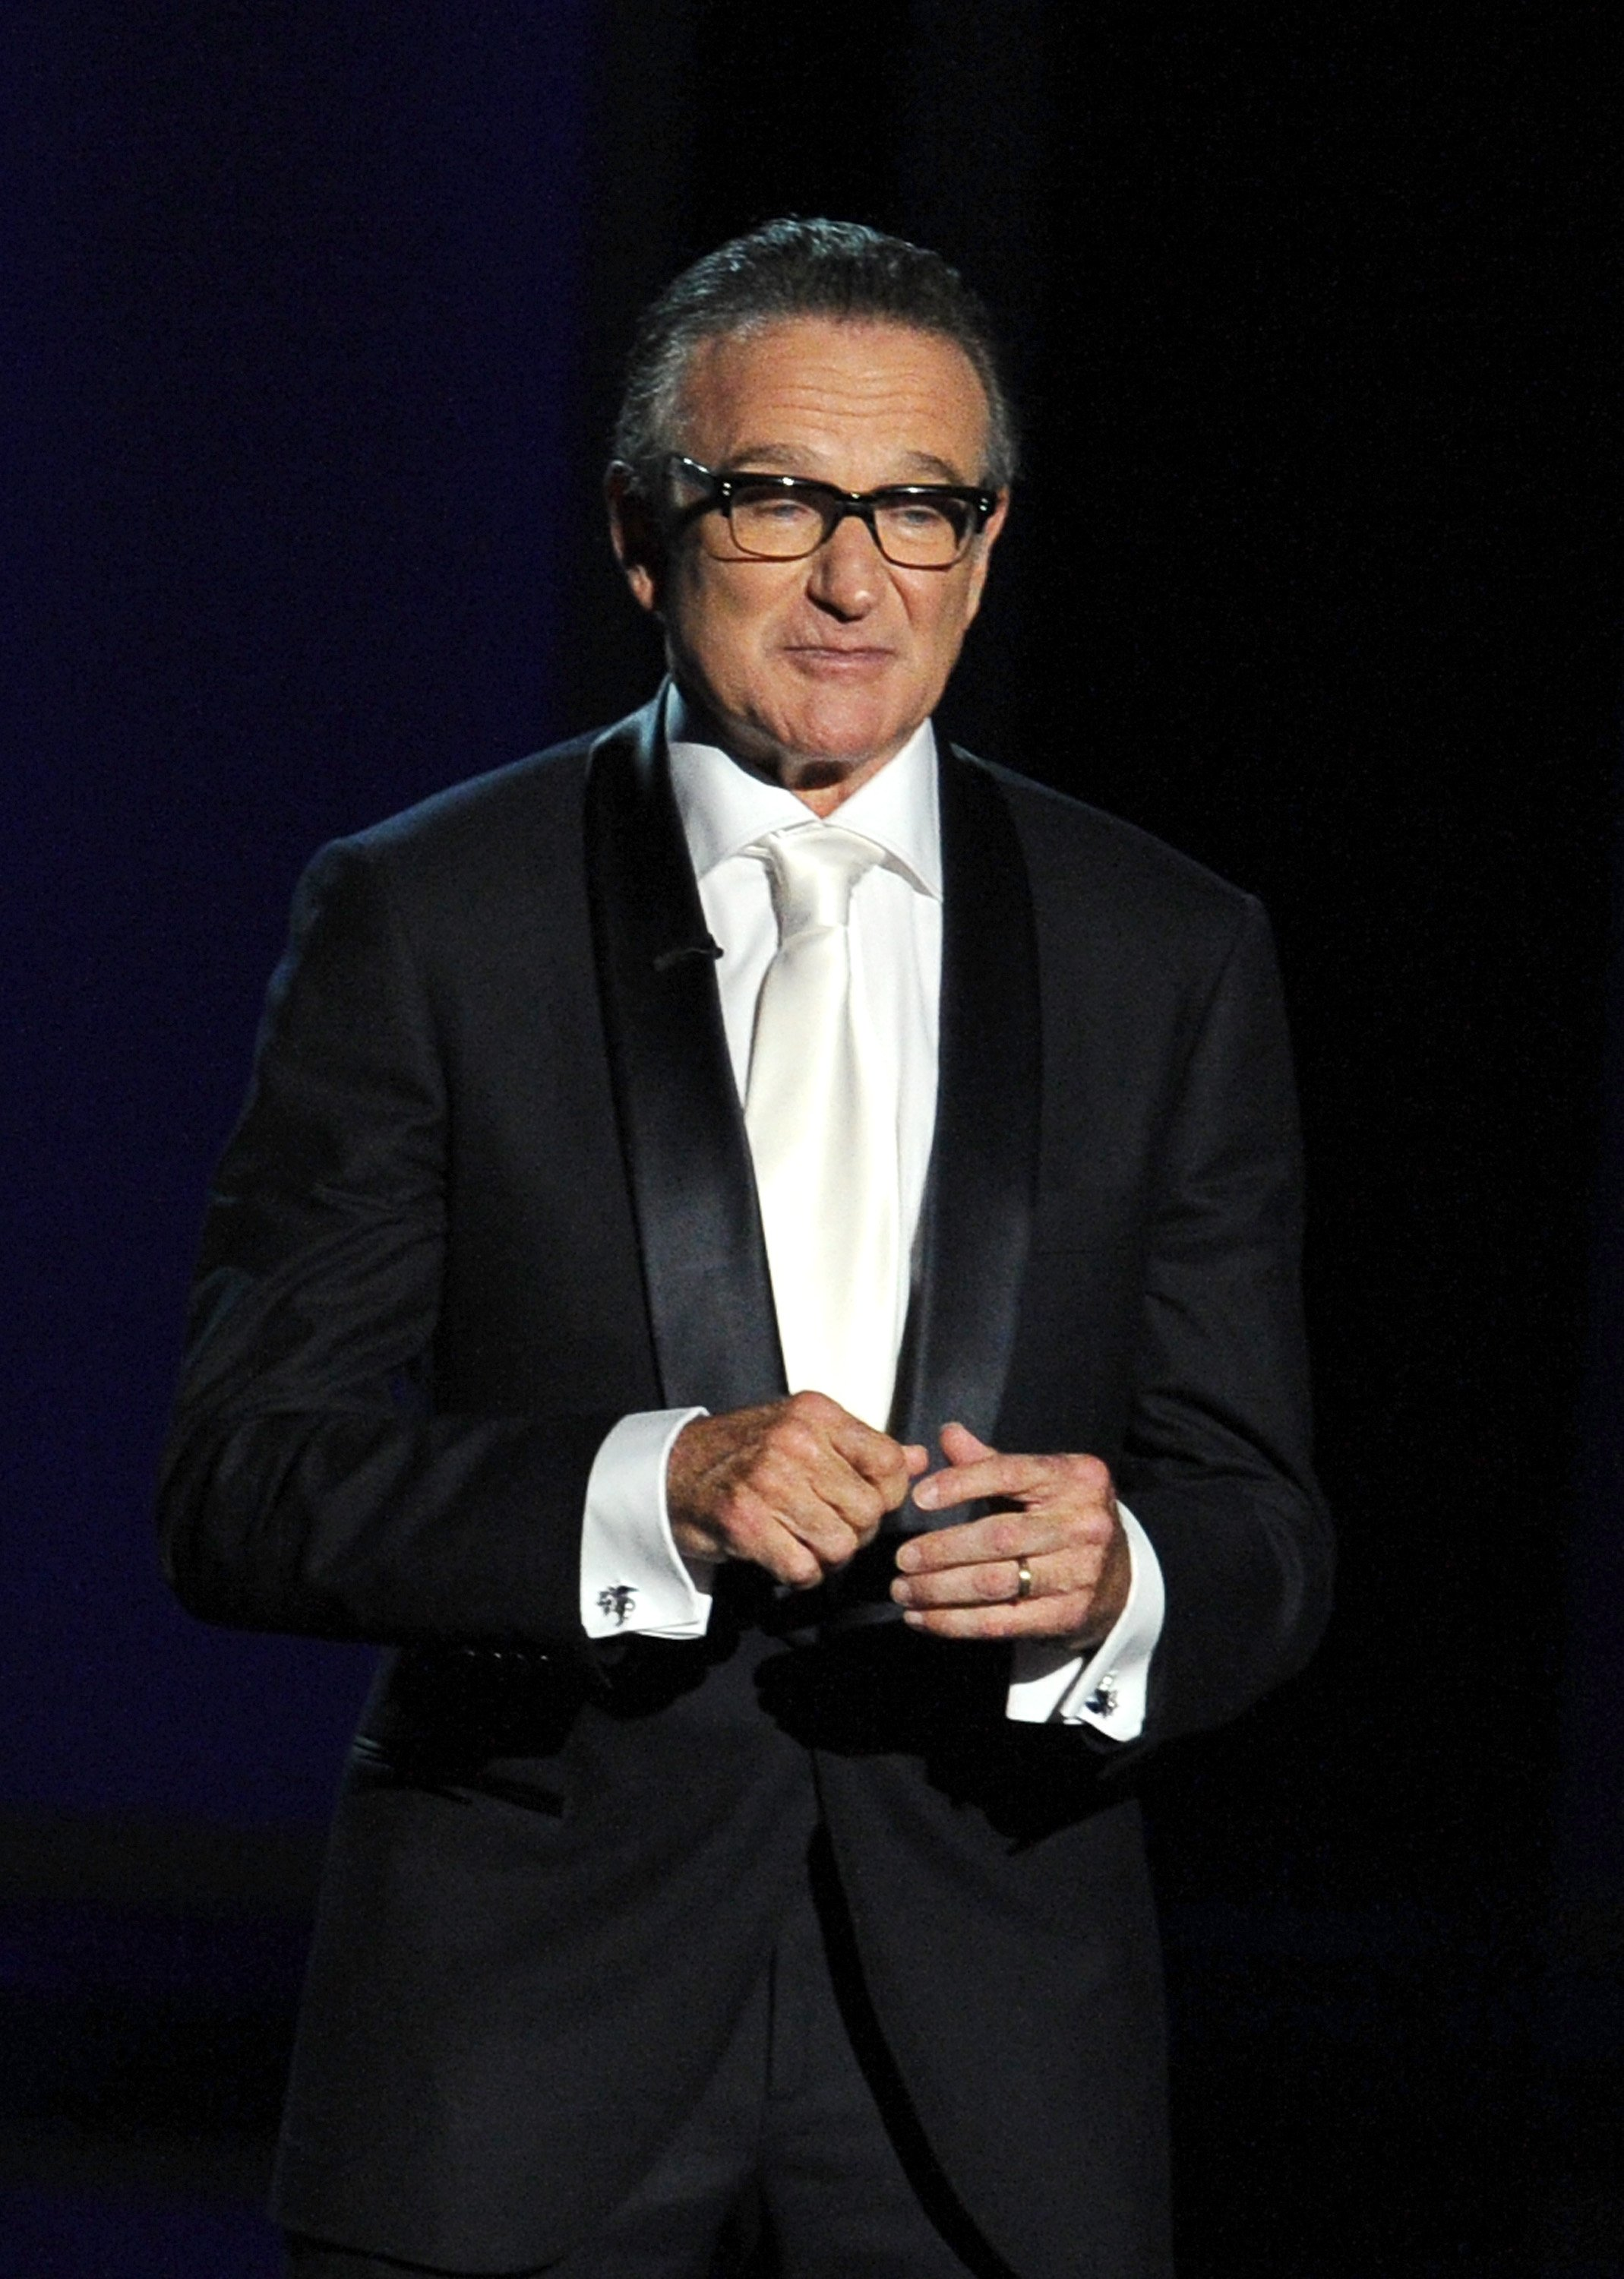 Robin Williams speaks at the Primetime Emmy Awards in Los Angeles, California on September 22, 2013 | Photo: Getty Images